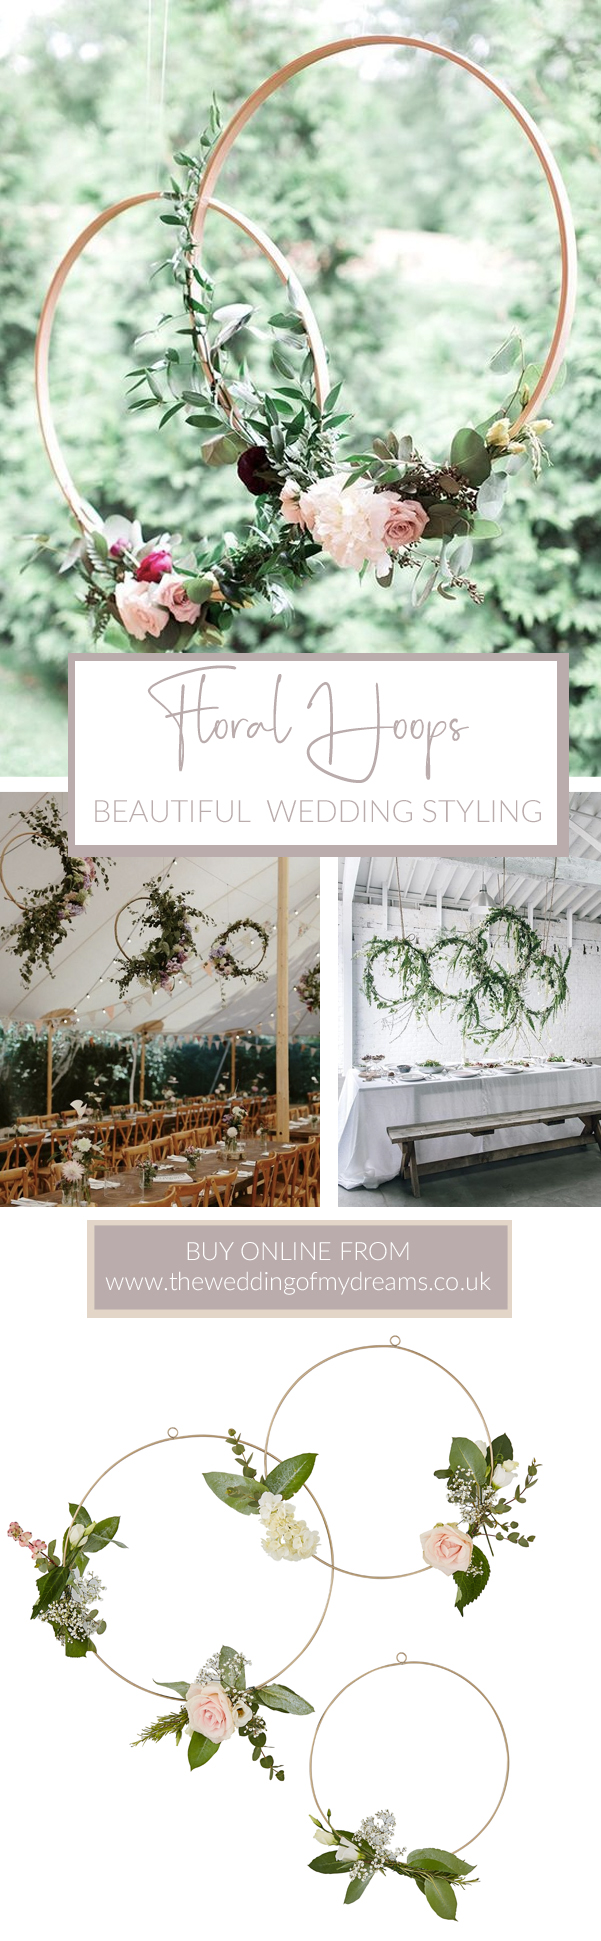 FLORAL HOOPS wedding styling ideas from the wedding of my dreams